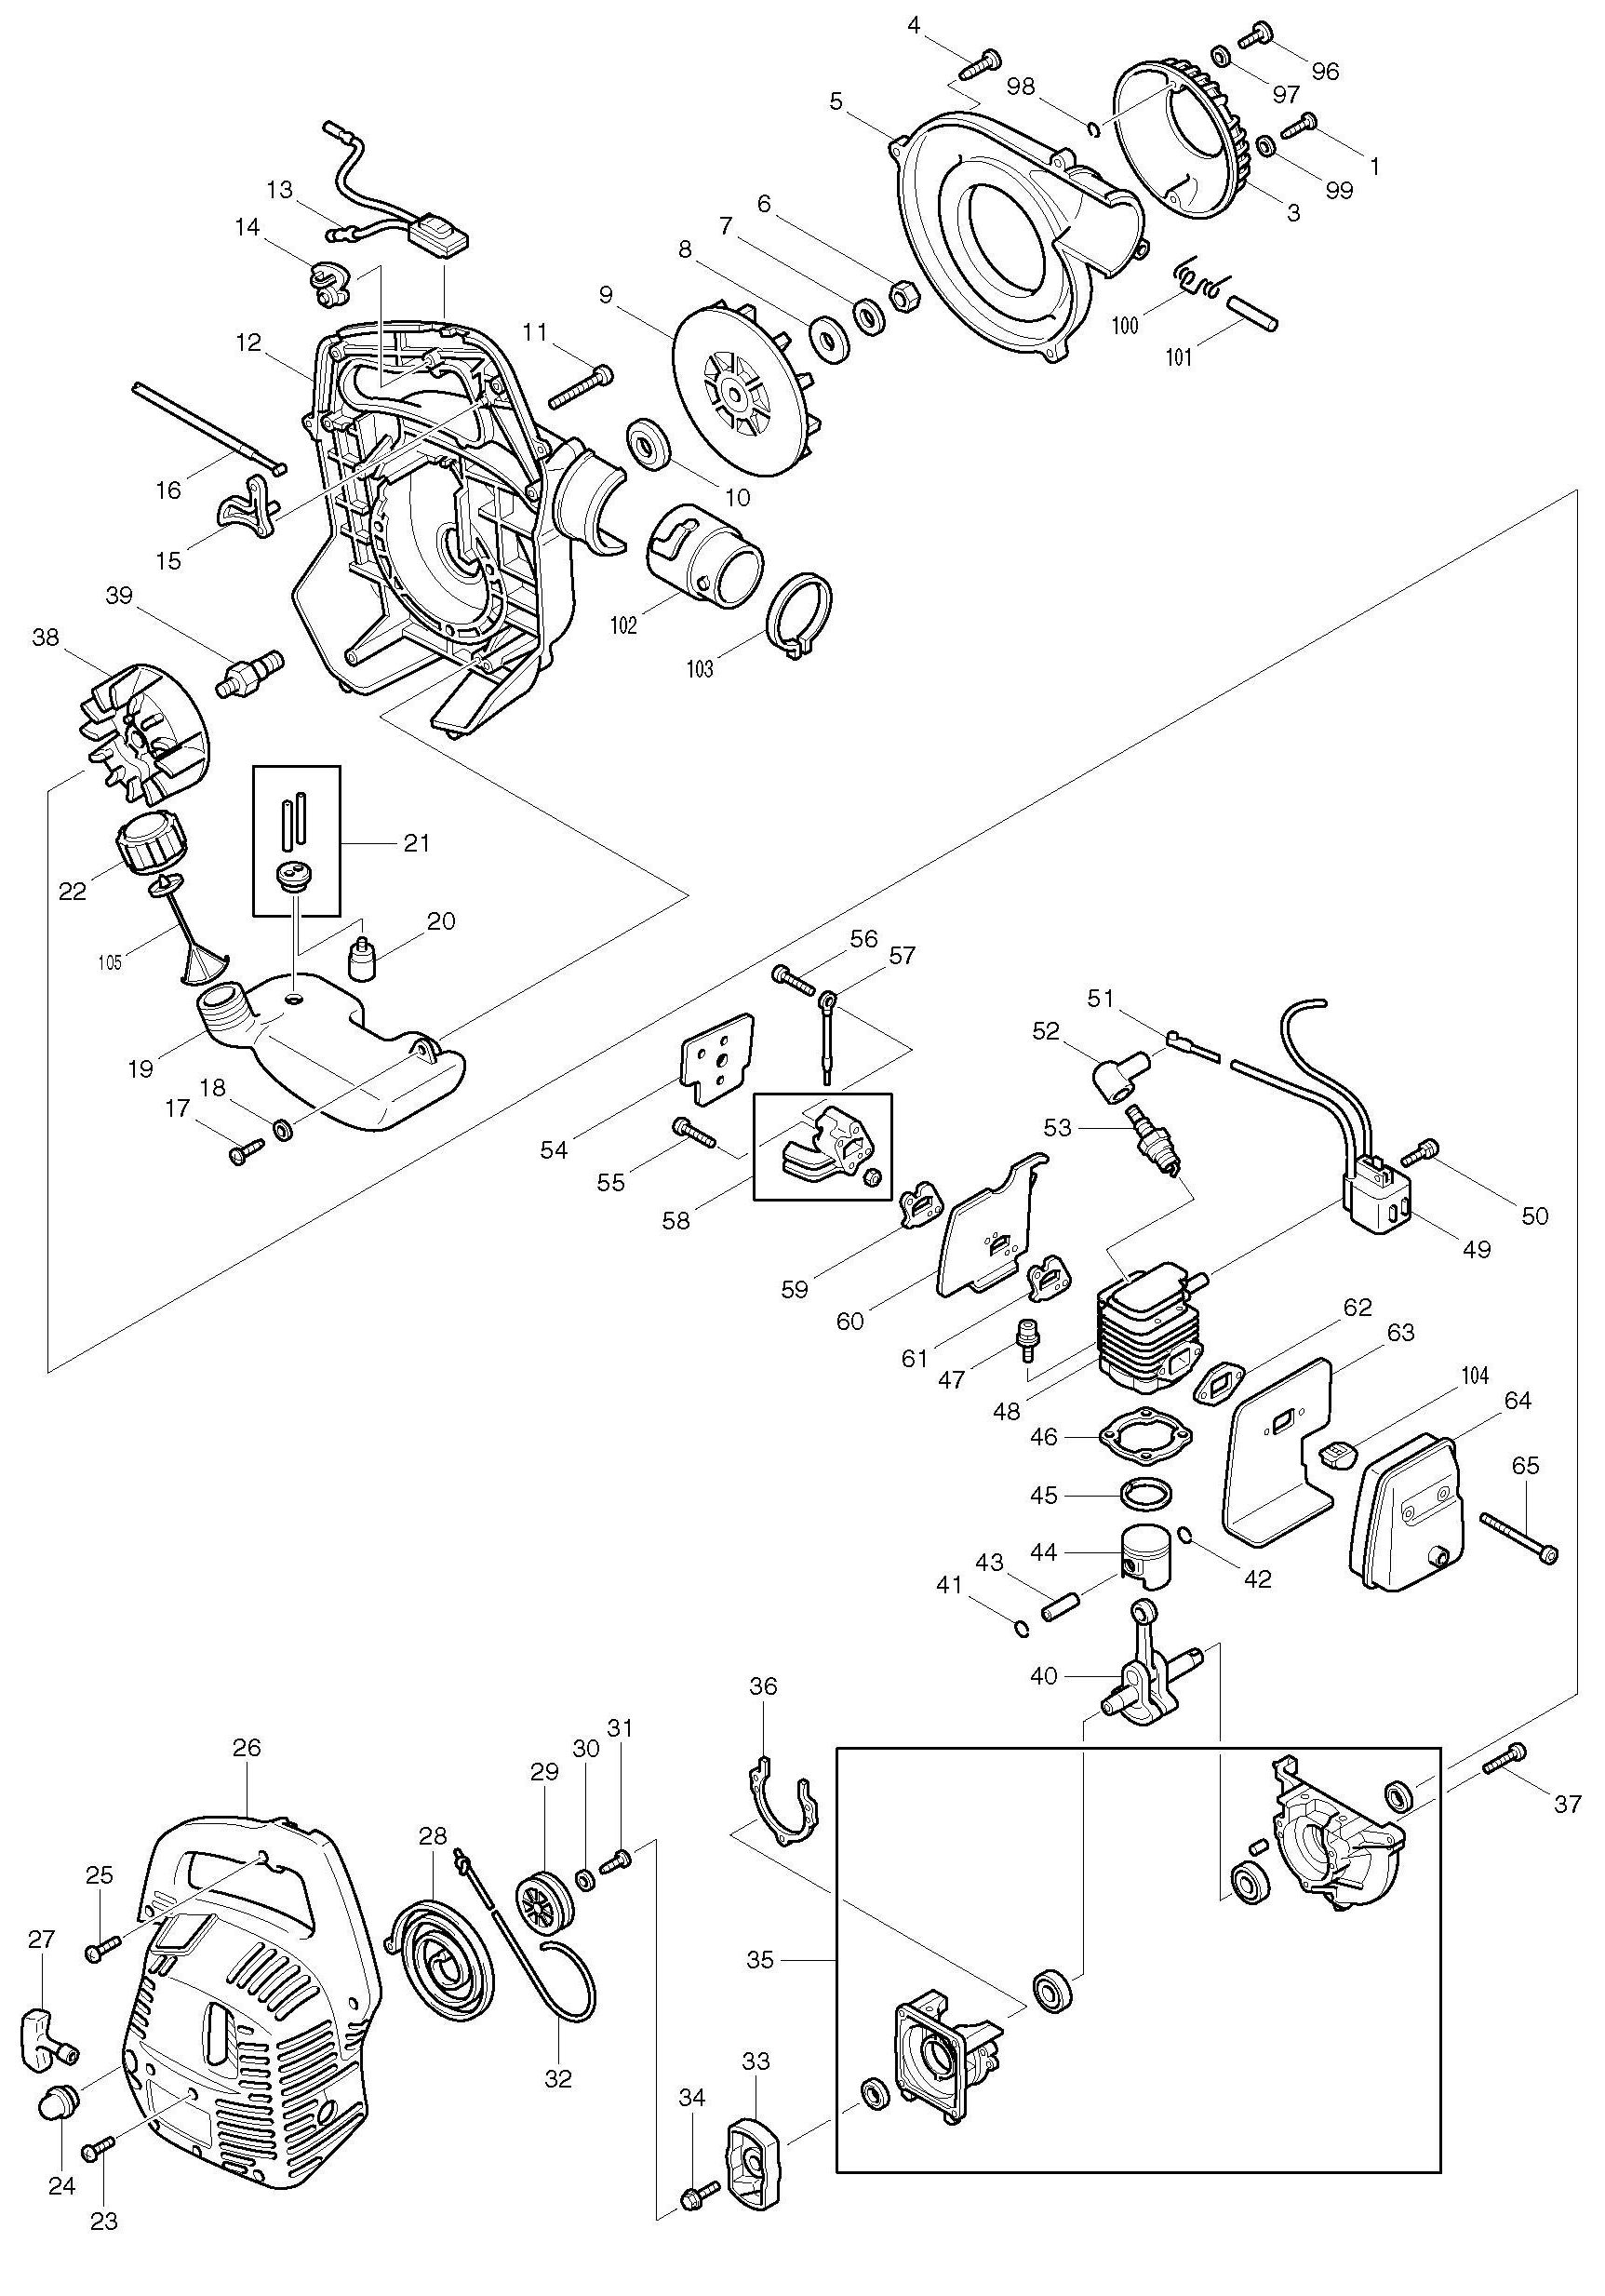 hight resolution of makita blower wiring diagram wiring diagram detailed emerson blower motor wiring diagram makita blower wiring diagram